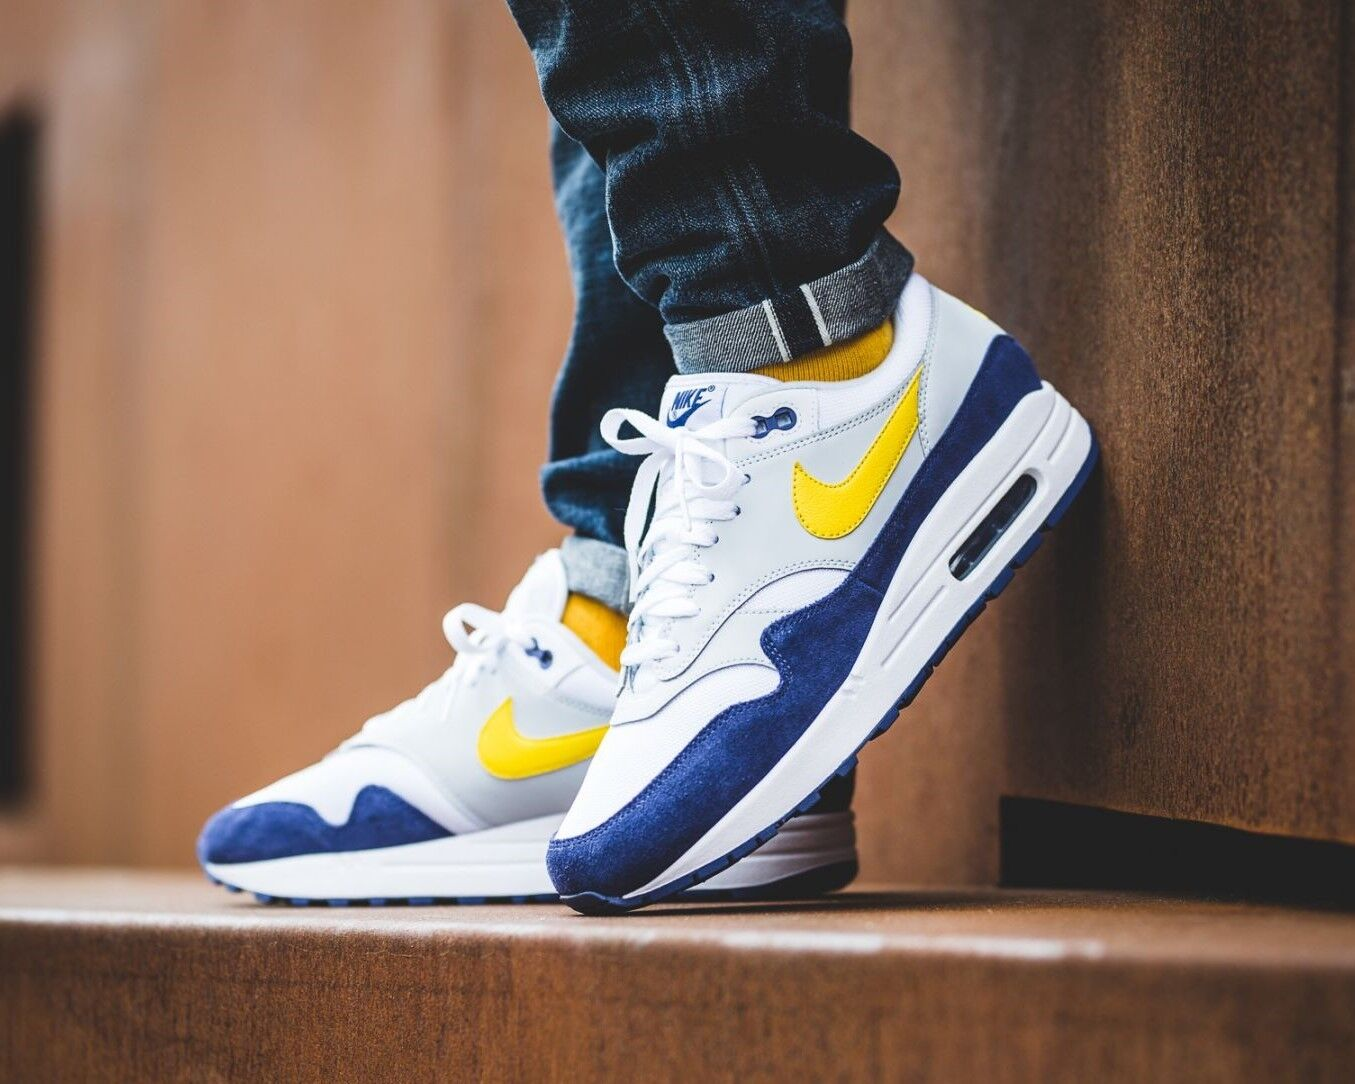 BNWB & Authentic Nike ® Air Max 1 Trainers in White   bluee   Yellow UK Size 10